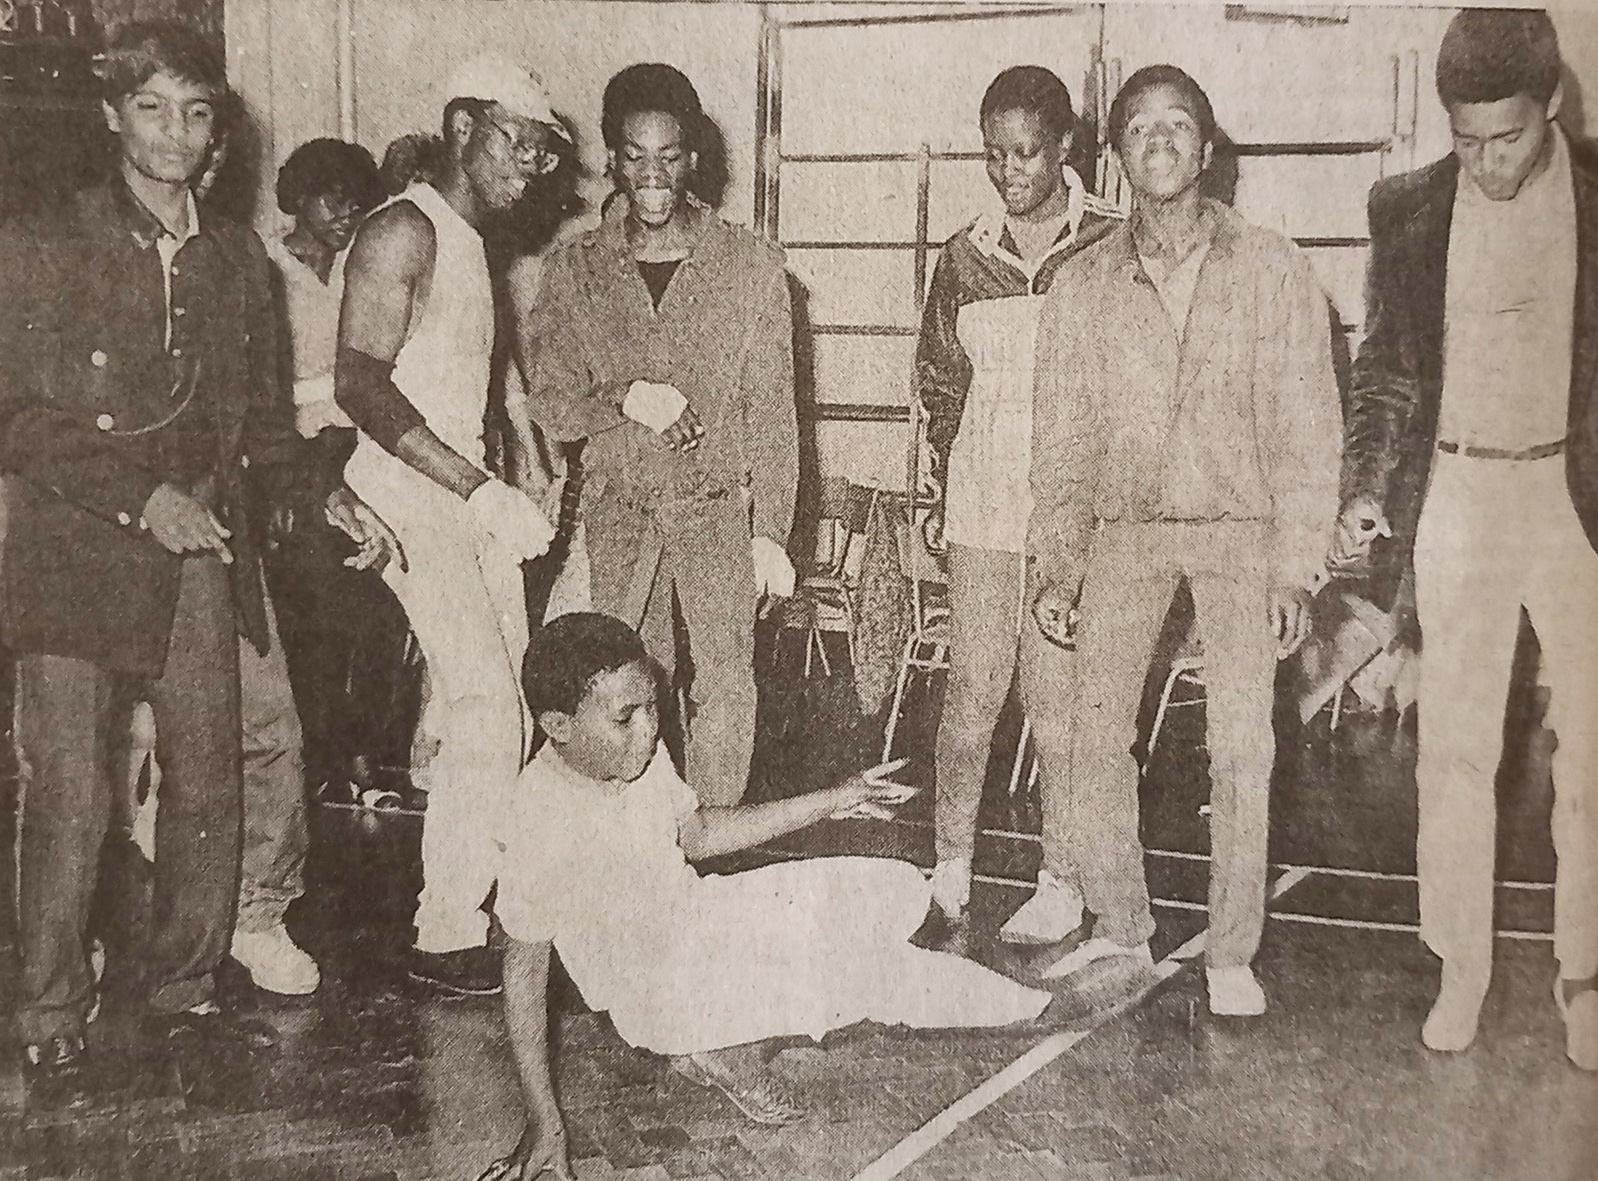 photo of people dancing | West Herts and Watford Observer, 29 June 1984